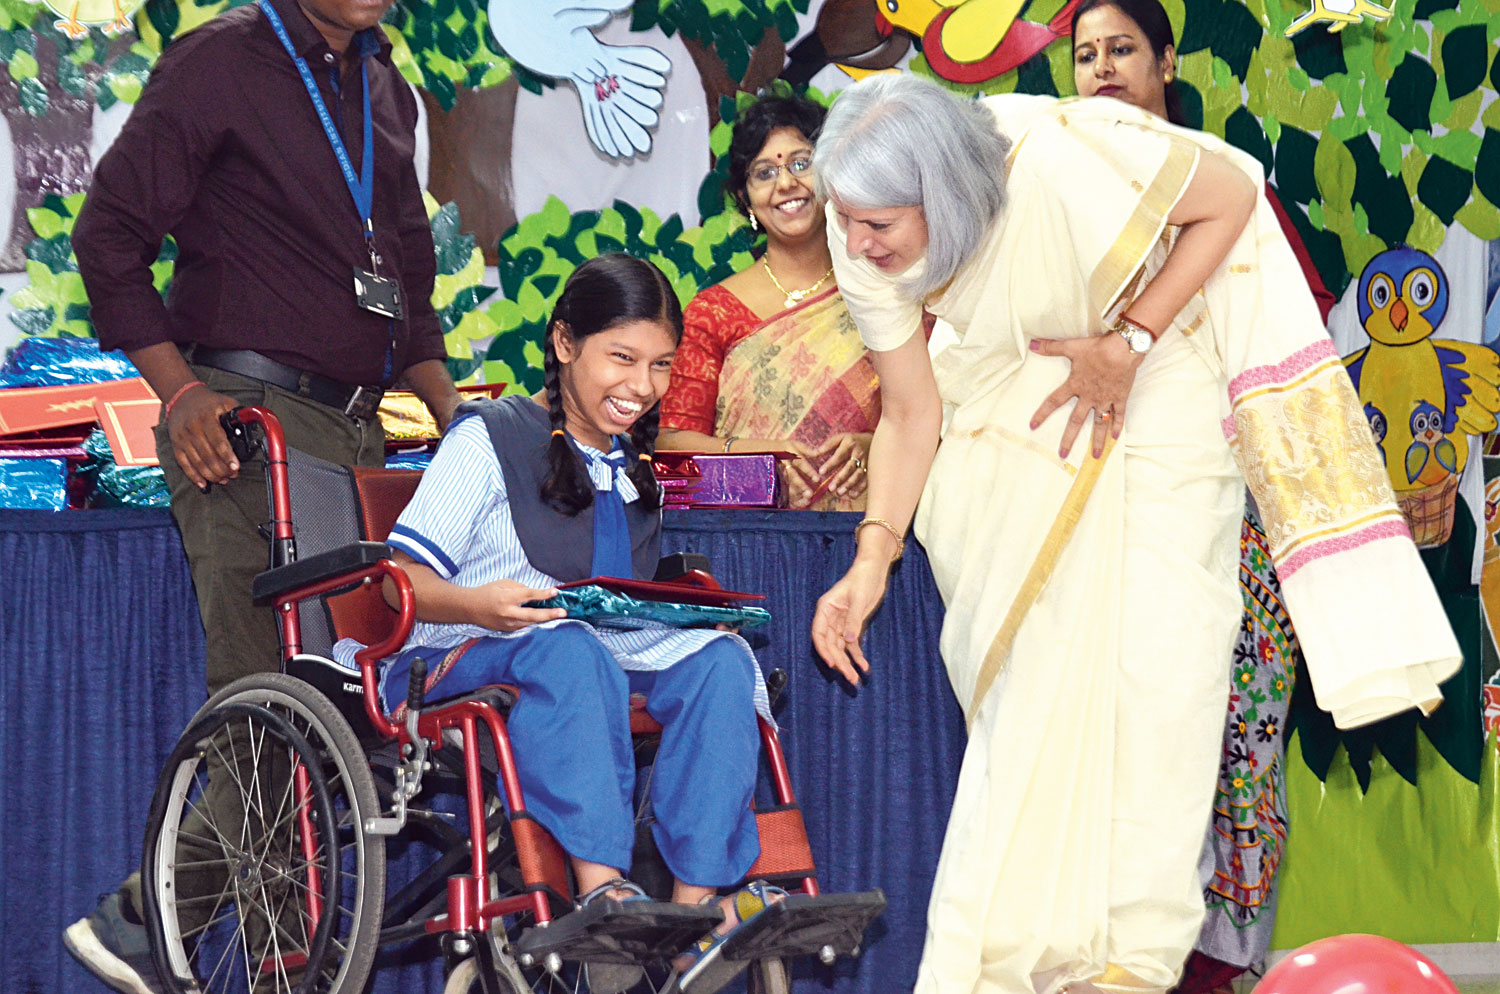 Afsara Khan loves to take part in cultural programmes and enjoys dancing from her wheelchair. She got a prize for general proficiency at the annual prize day of Indian Institute of Cerebral Palsy (IICP) on Friday. The award was handed over by Suvina Shunglu, the principal of Sri Sri Academy.